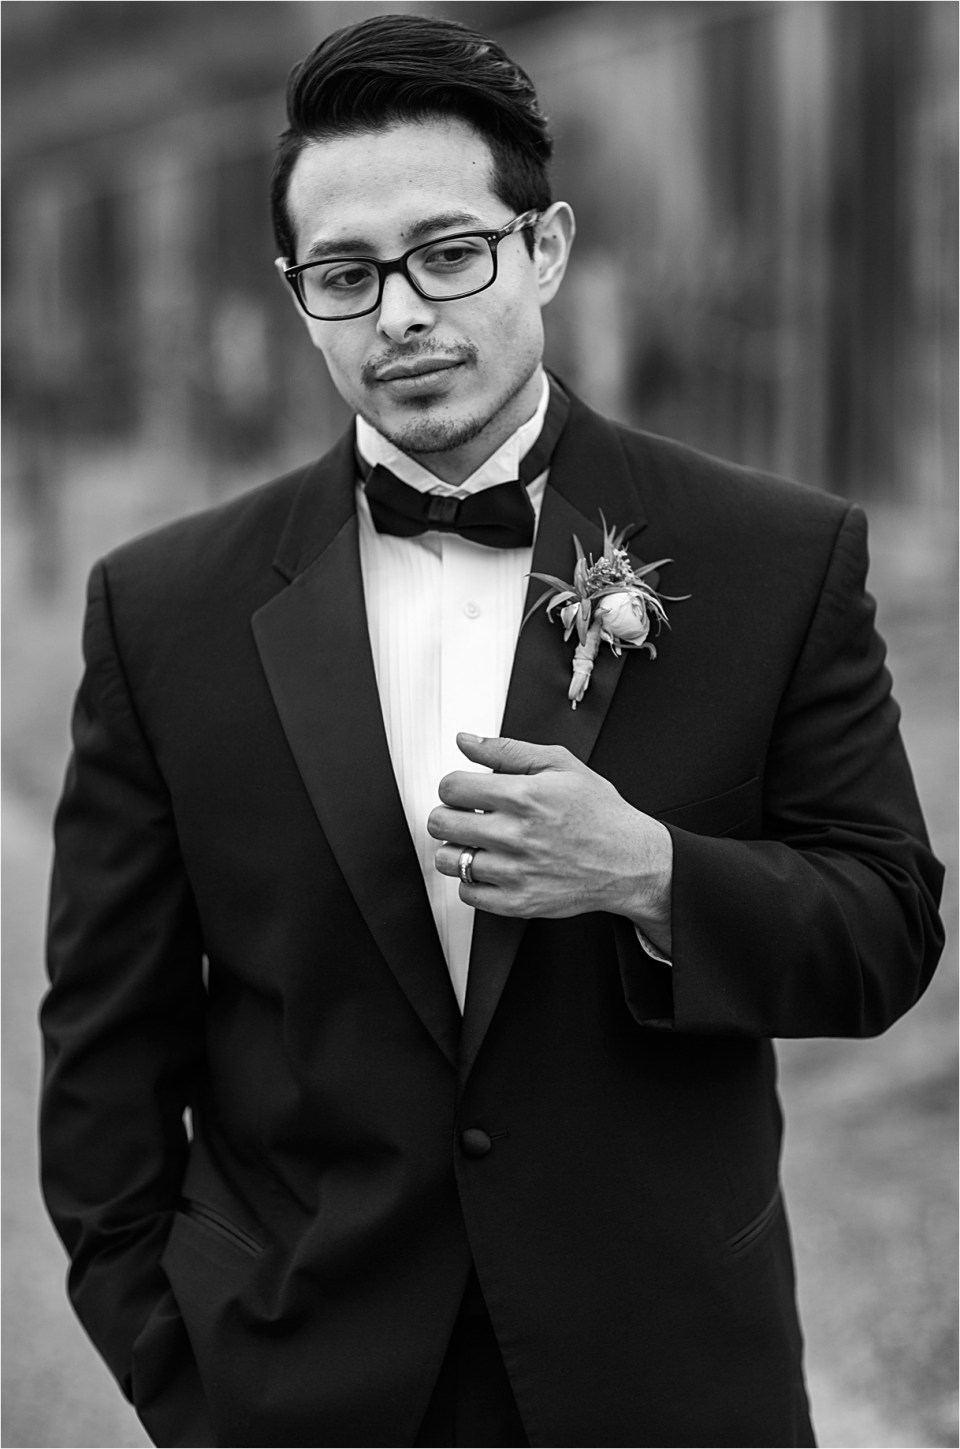 Black and White photo of a groom in a tux from Epiphany Bridal Boutique in Carmel Valley, CA.